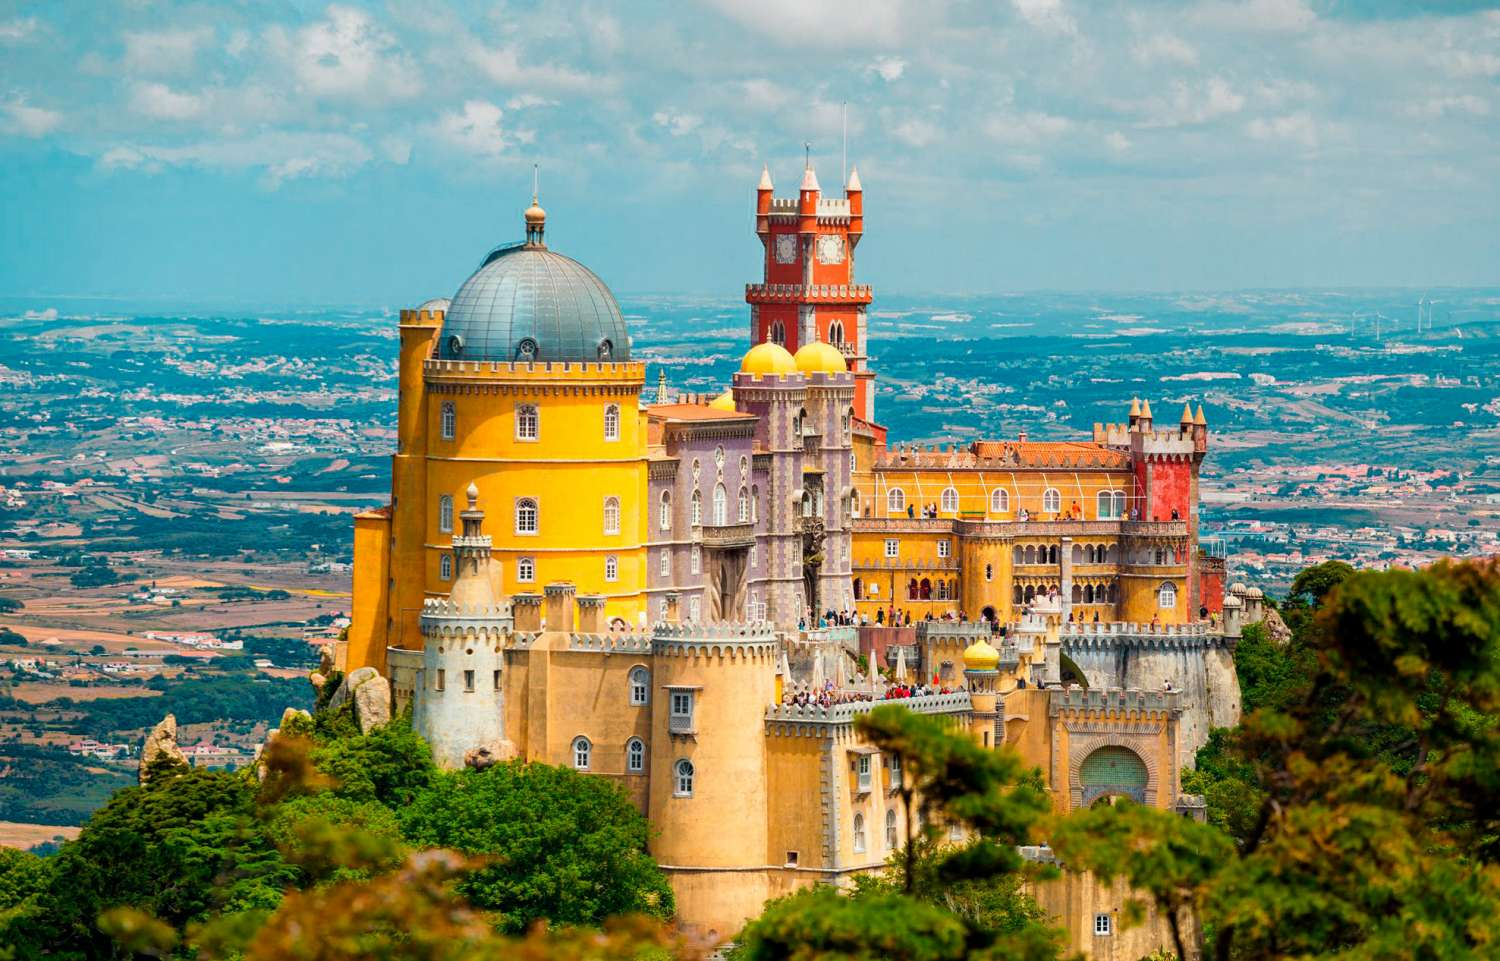 The Pena Palace, Sintra's most famous attraction.